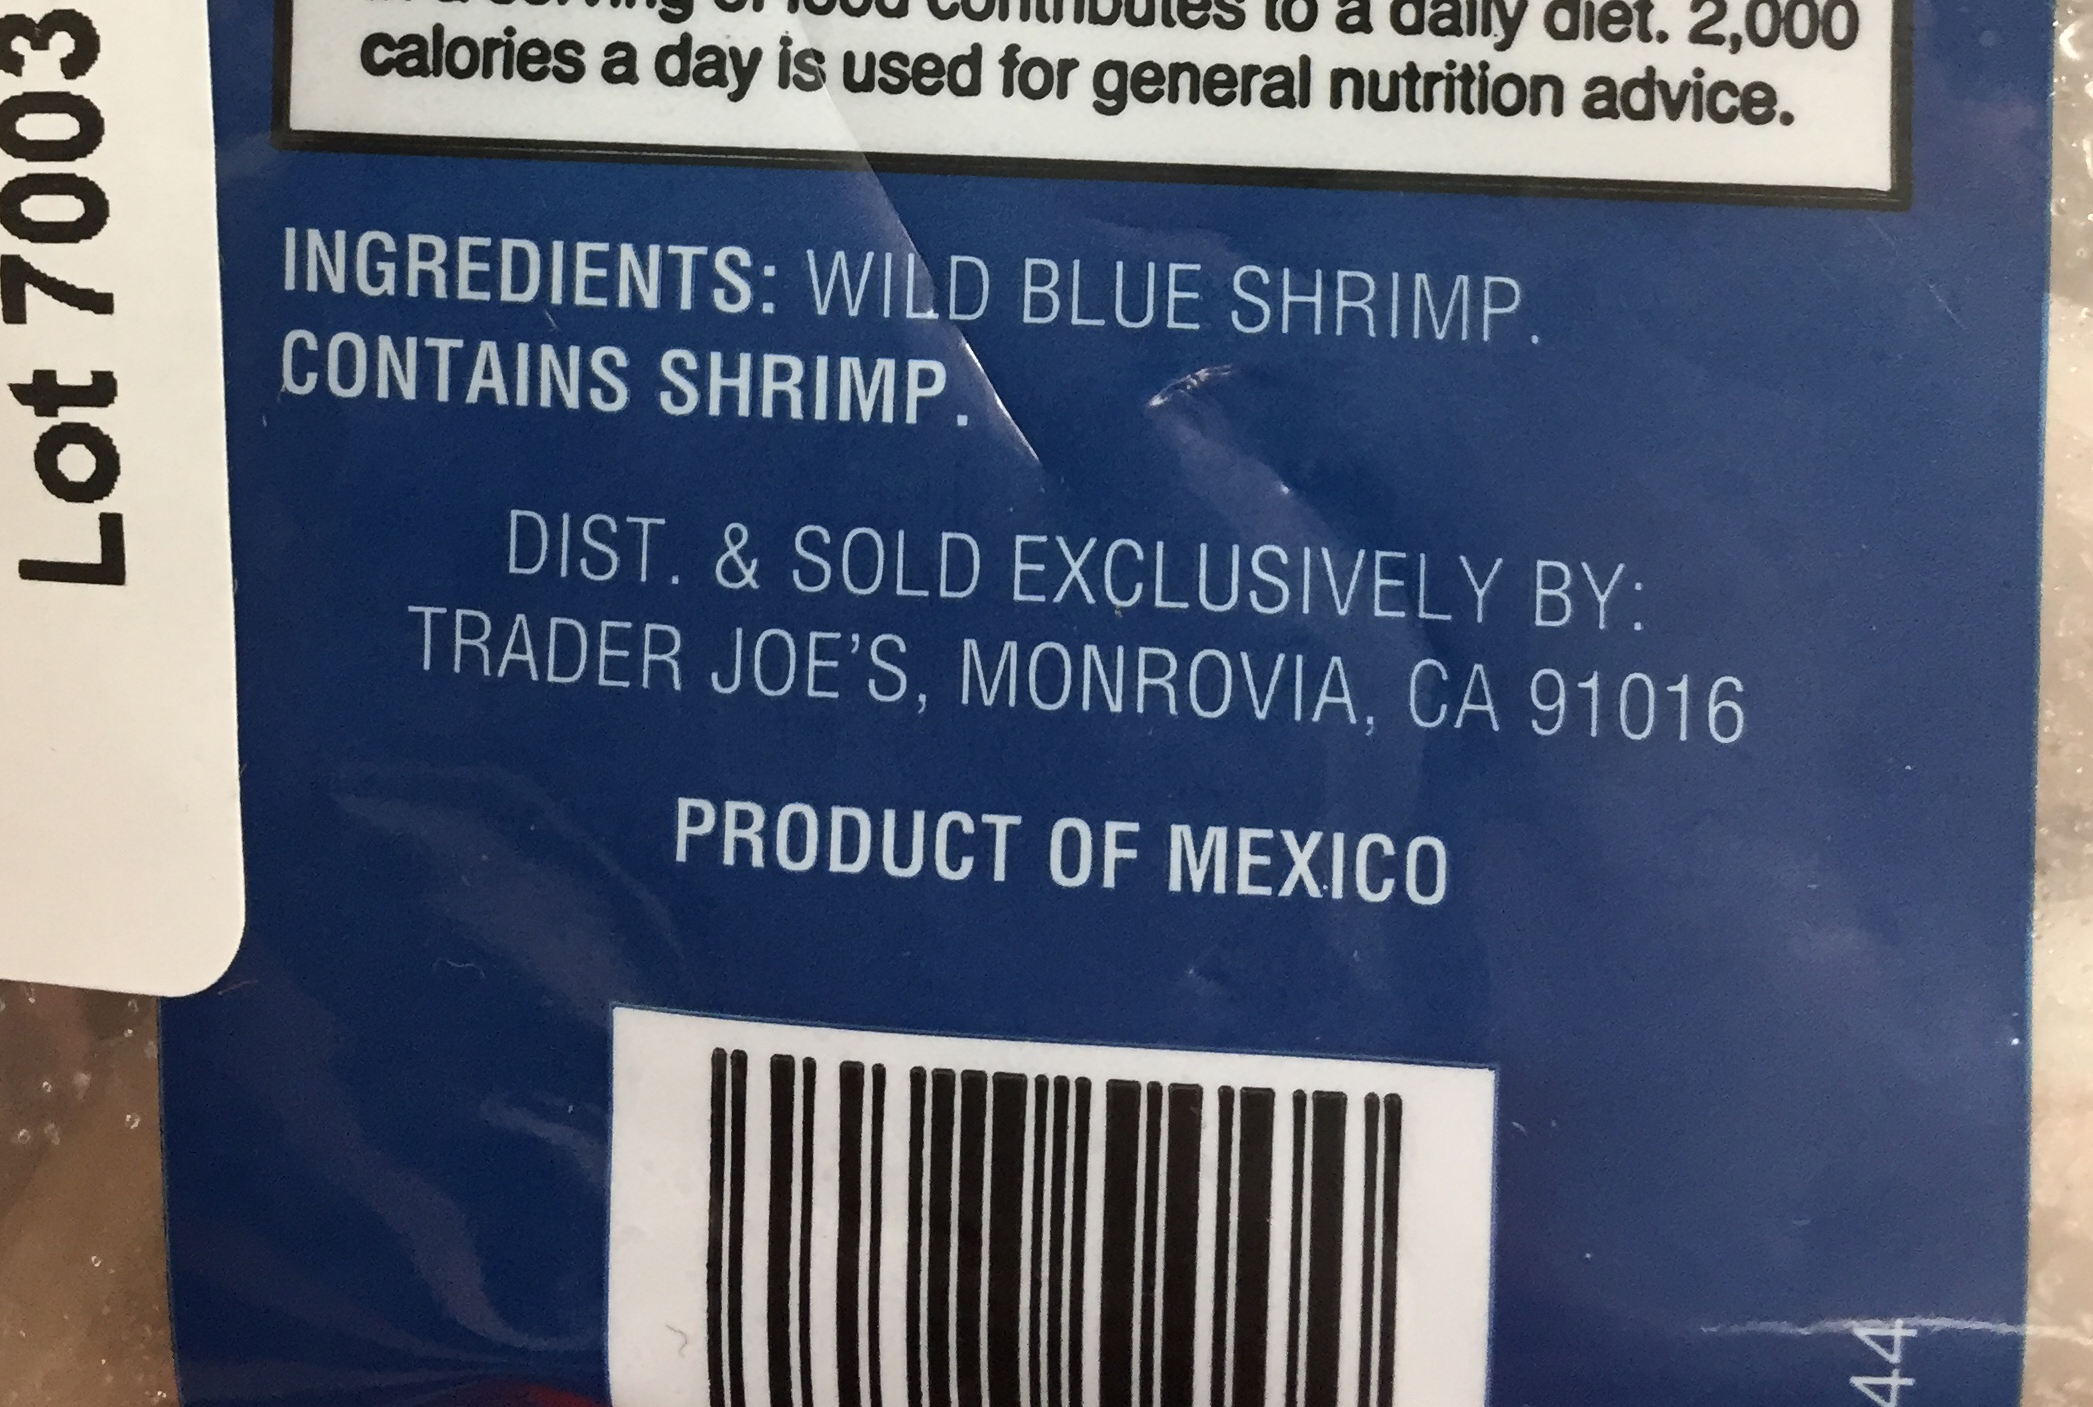 Label of shrimp from Mexico at Trader Joe's